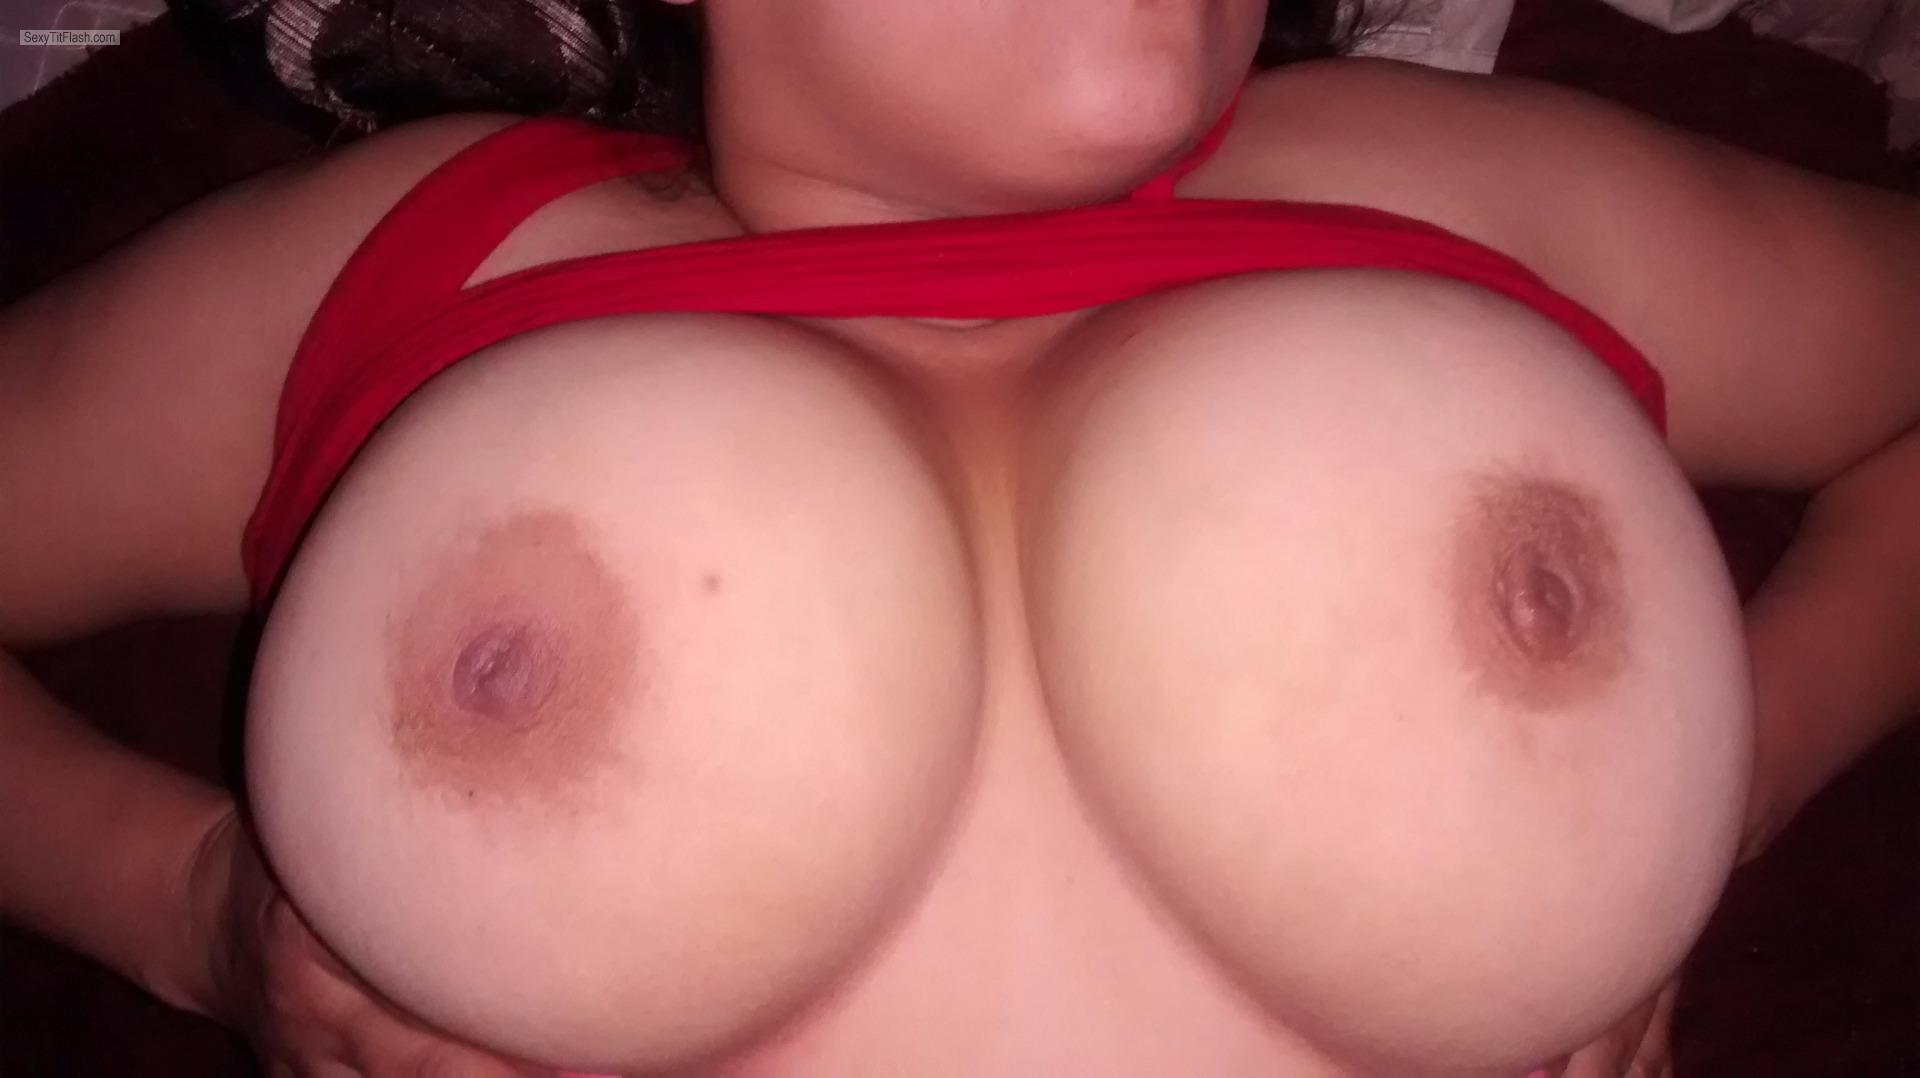 Tit Flash: Girlfriend's Extremely Big Tits - Topless My GF DDD's from United States